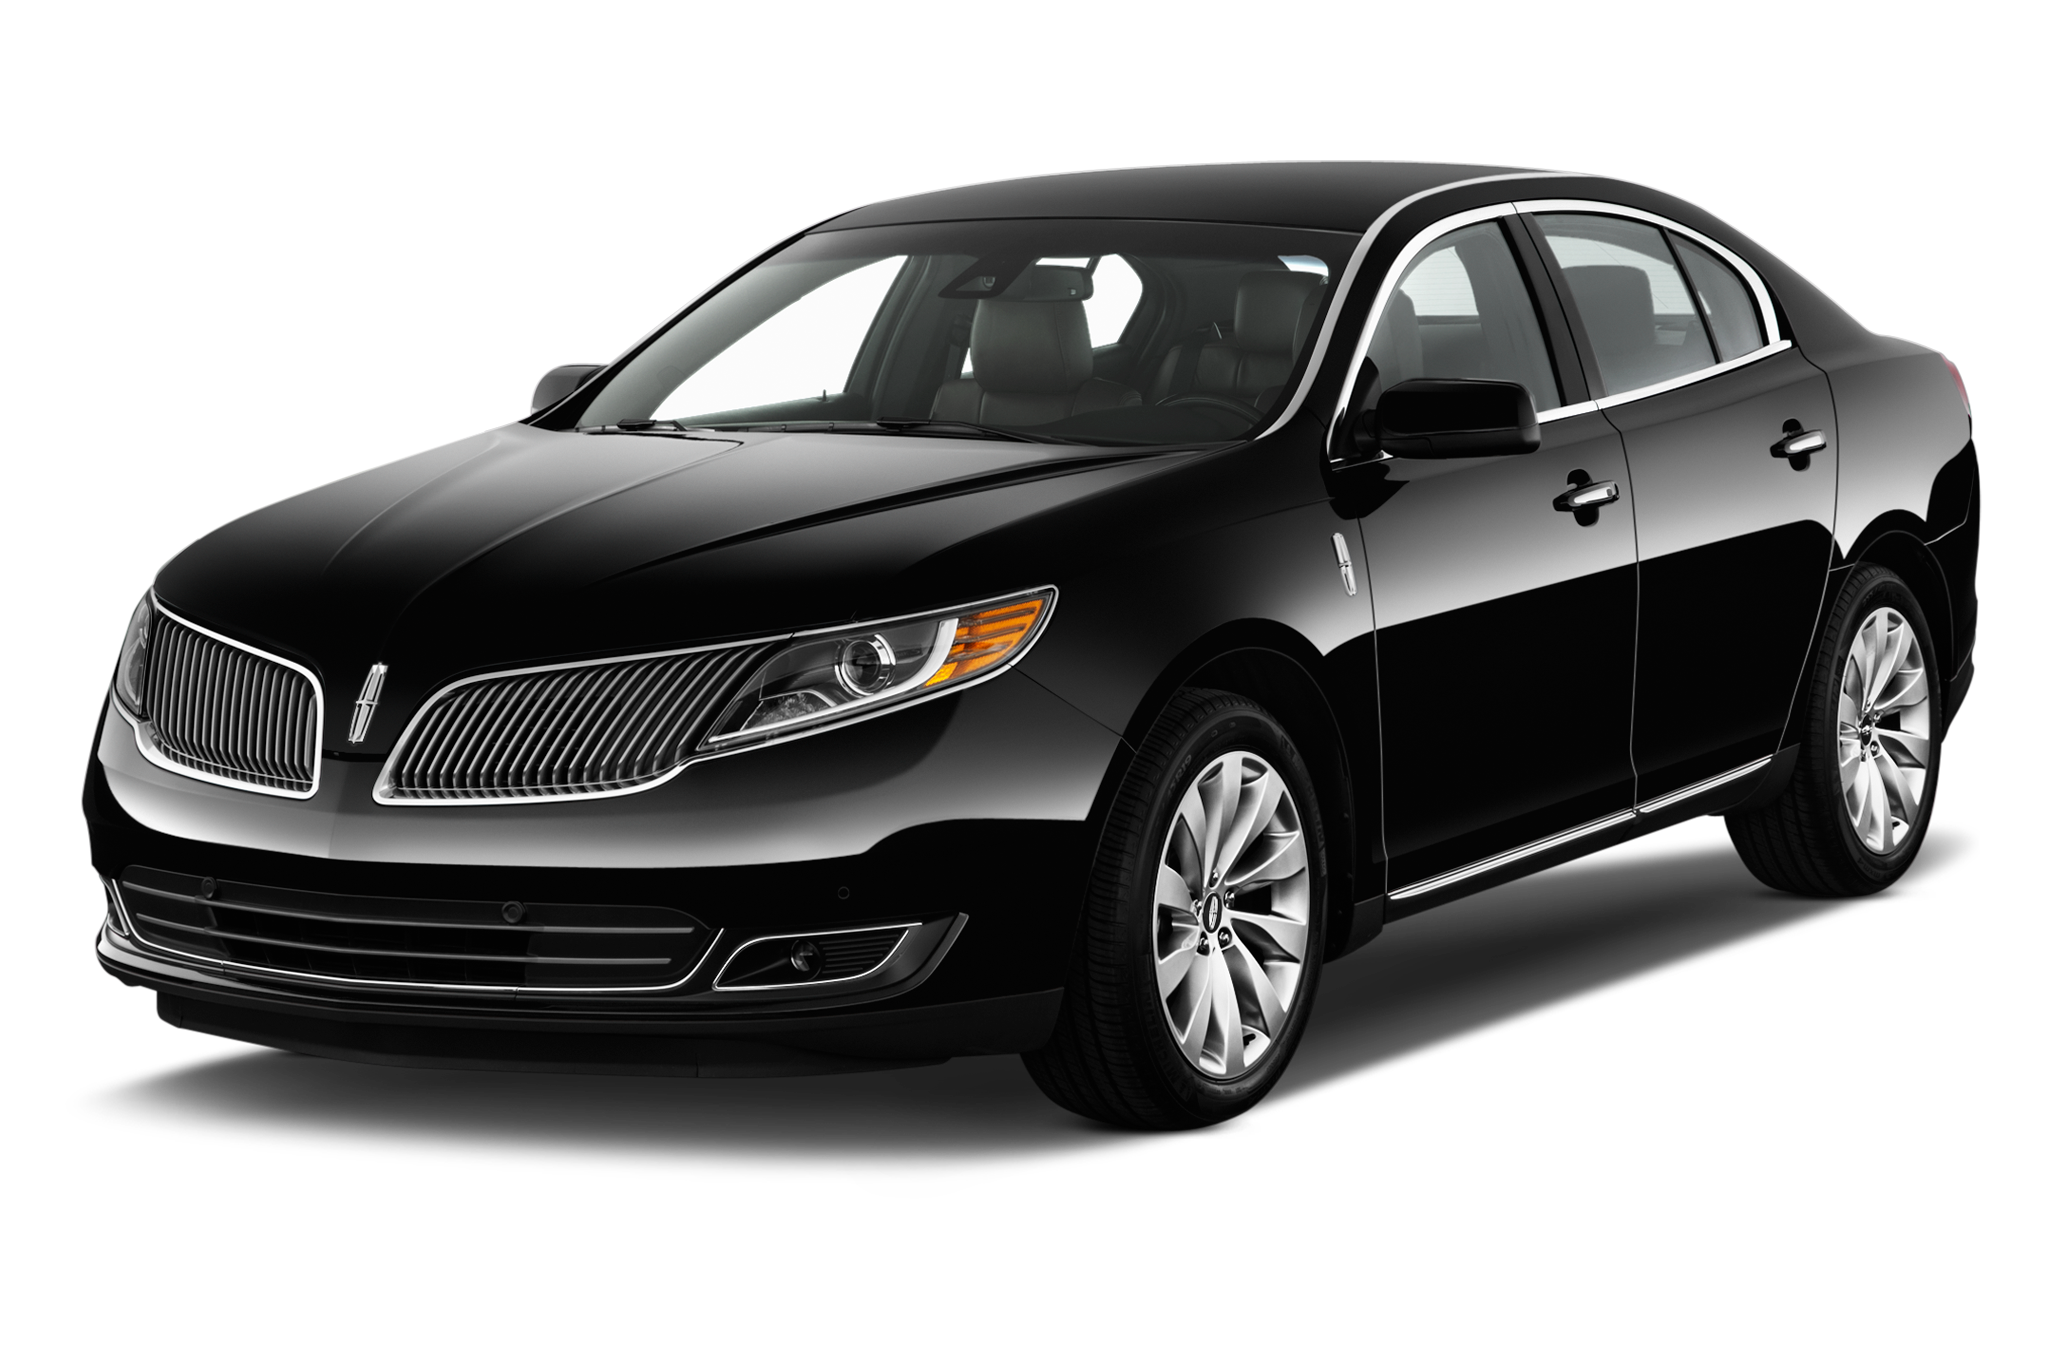 mkz image download lincoln modelyear